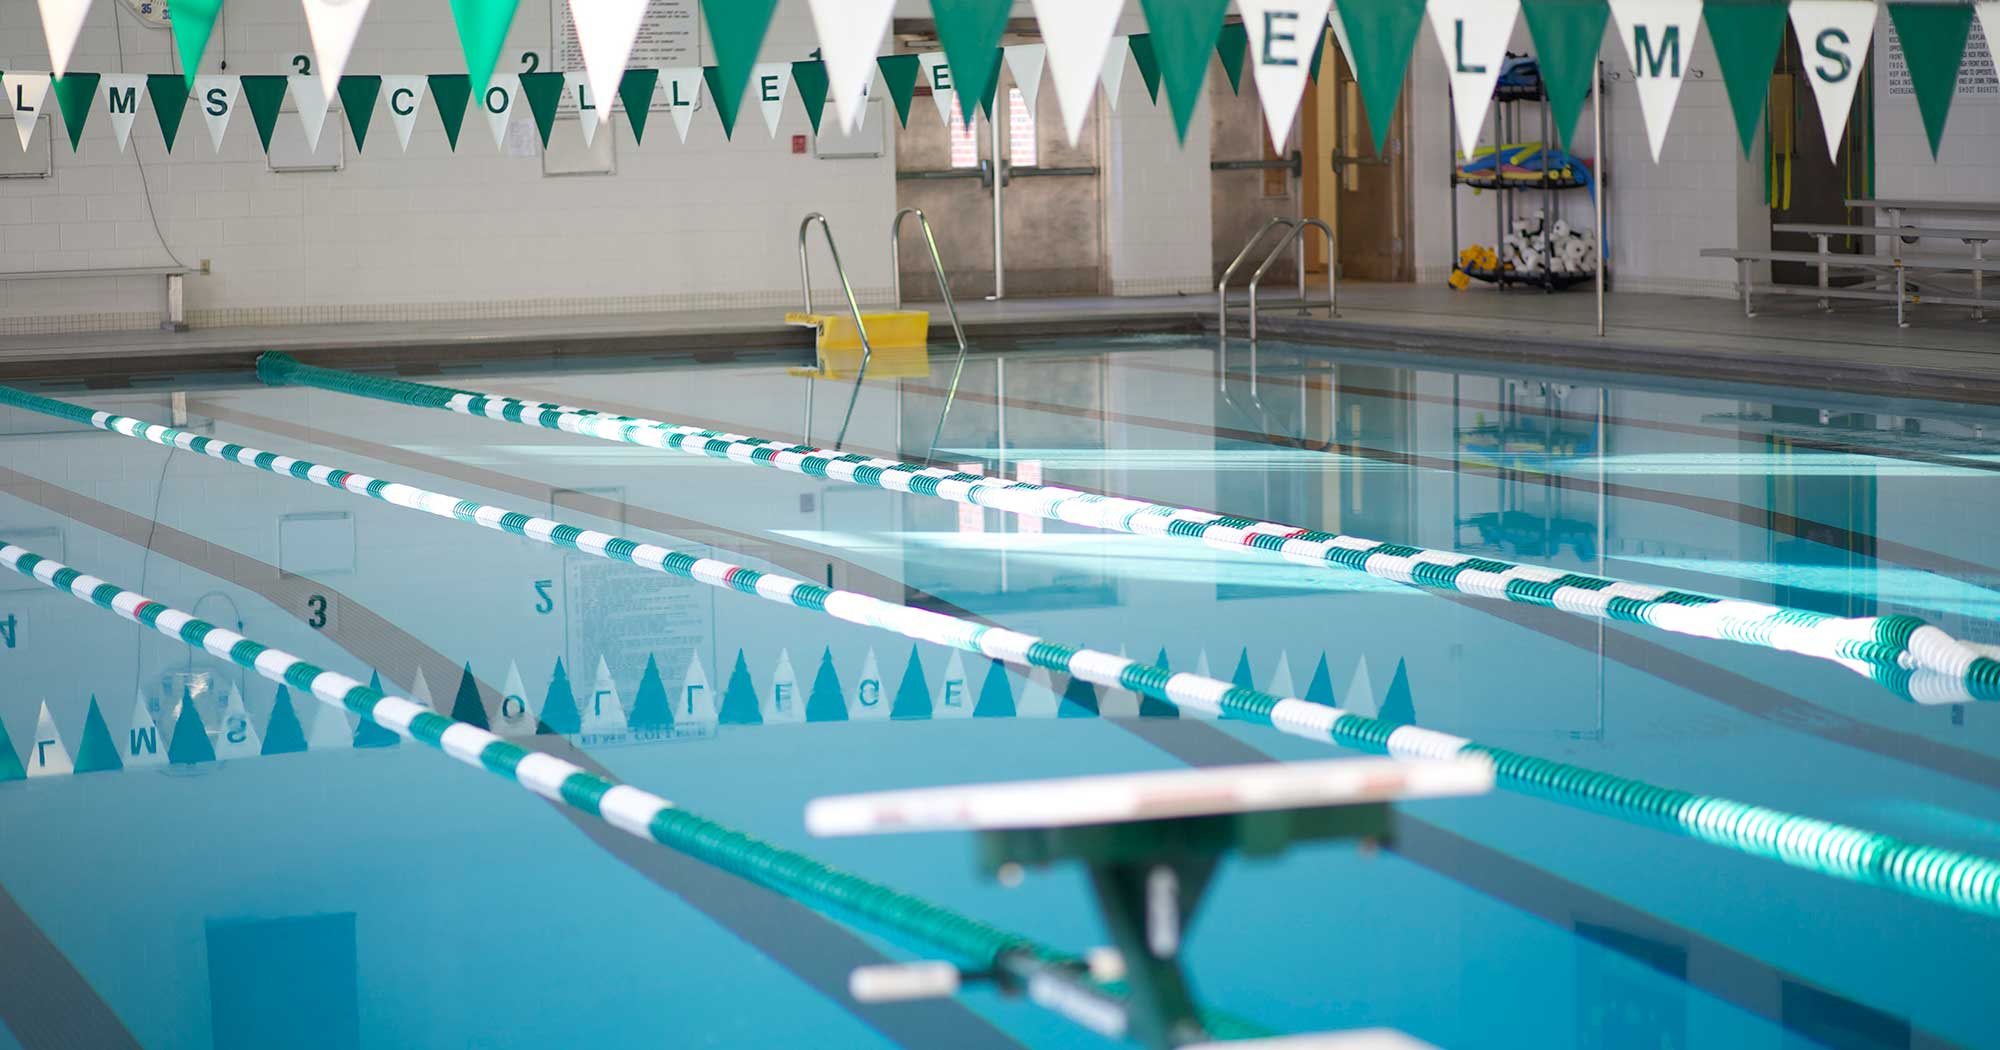 Photo of the swimming pool in the Maguire Center